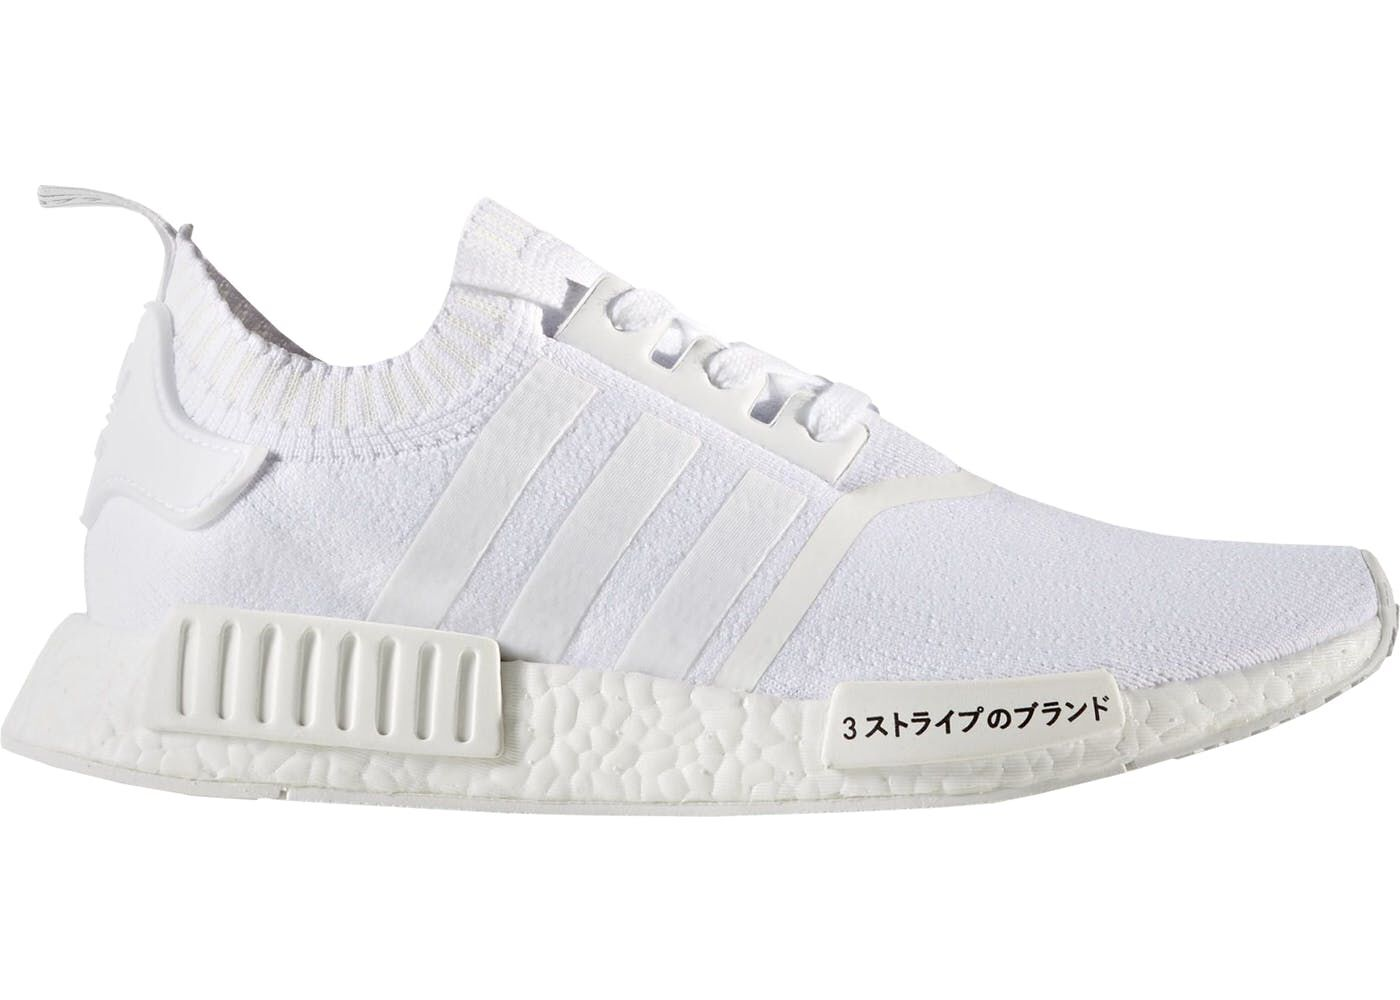 0b08b0ce Check out the adidas NMD R1 Japan Triple White available on StockX ...